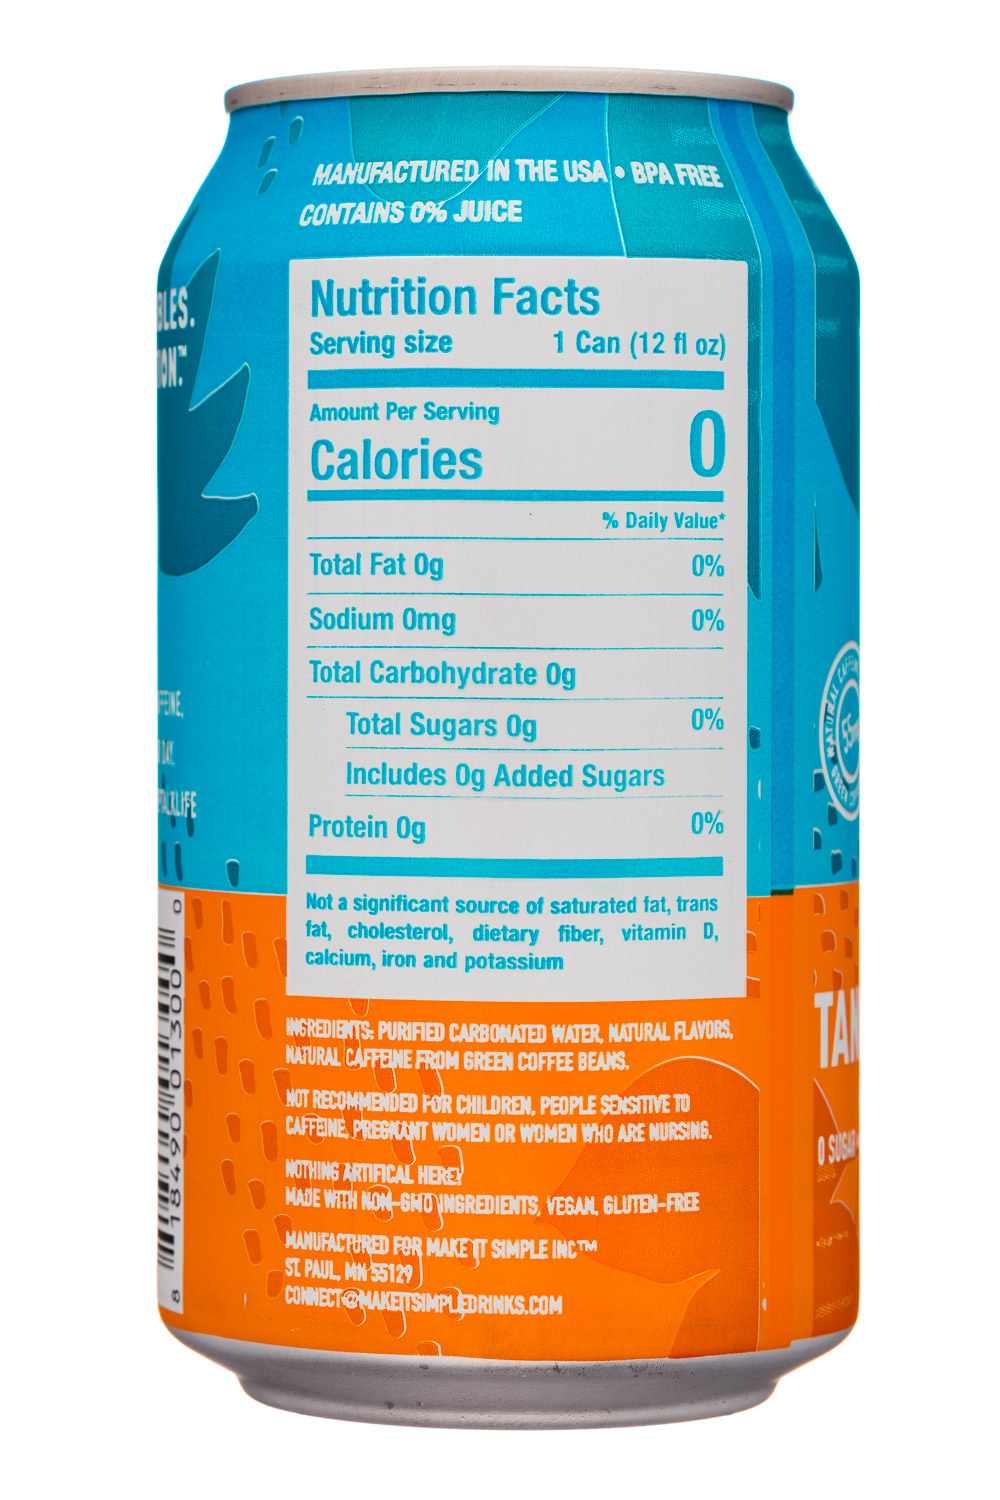 Pep Talk: PepTalk-12oz-CaffeinatedSparkling-TangerineBlack-Facts